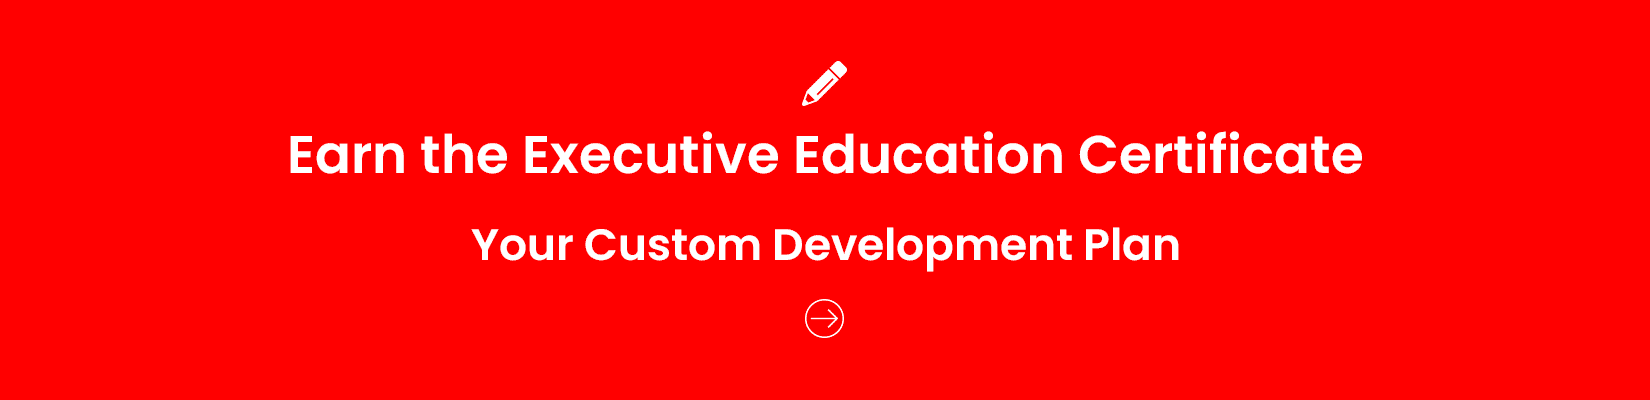 Executive Education Certificate